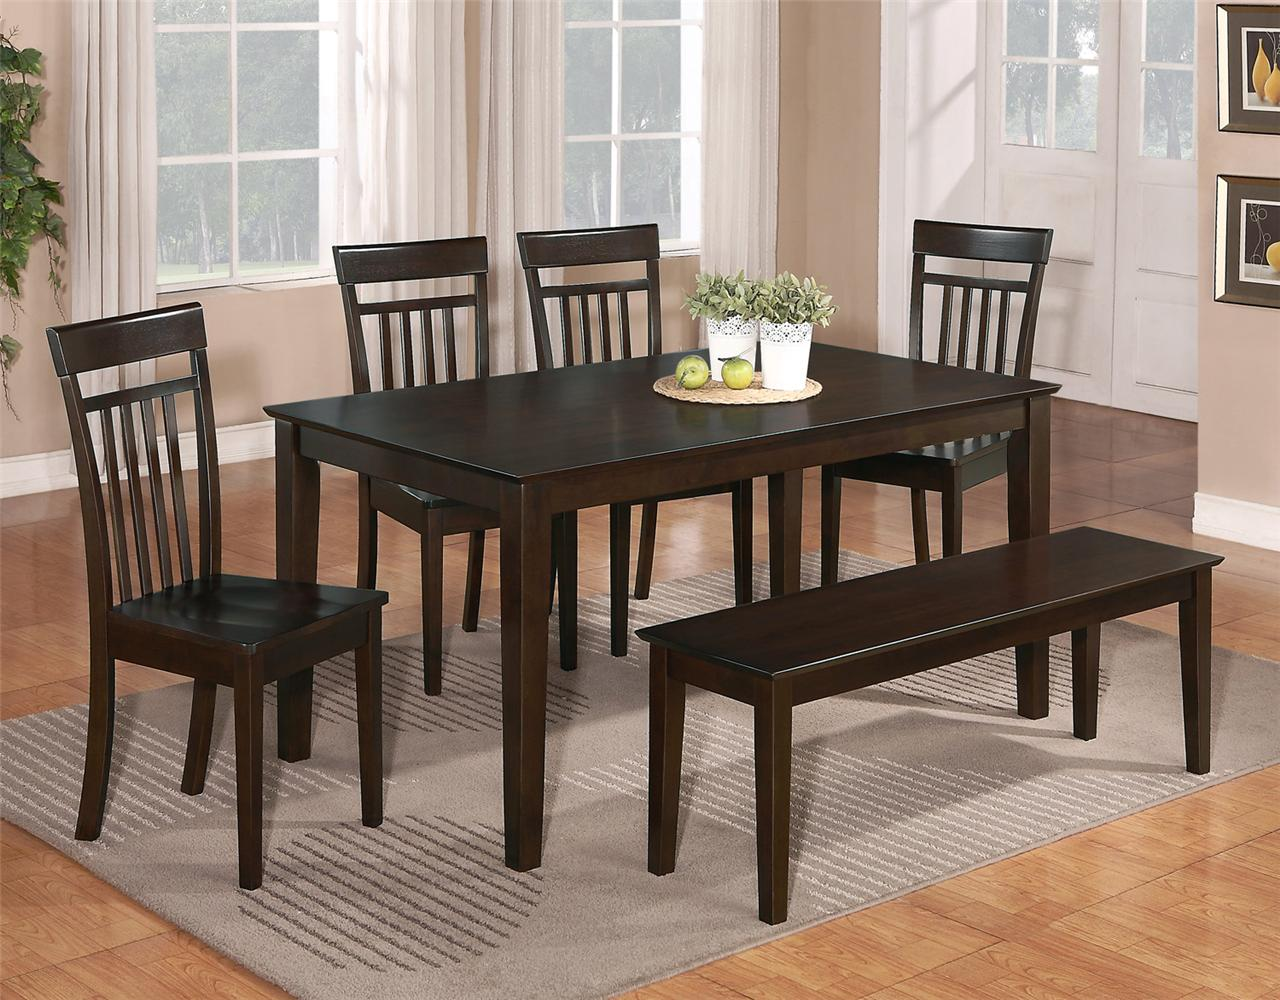 6 pc dinette kitchen dining room set table w 4 wood chair and 1 bench cappuccino ebay Dining table and bench set